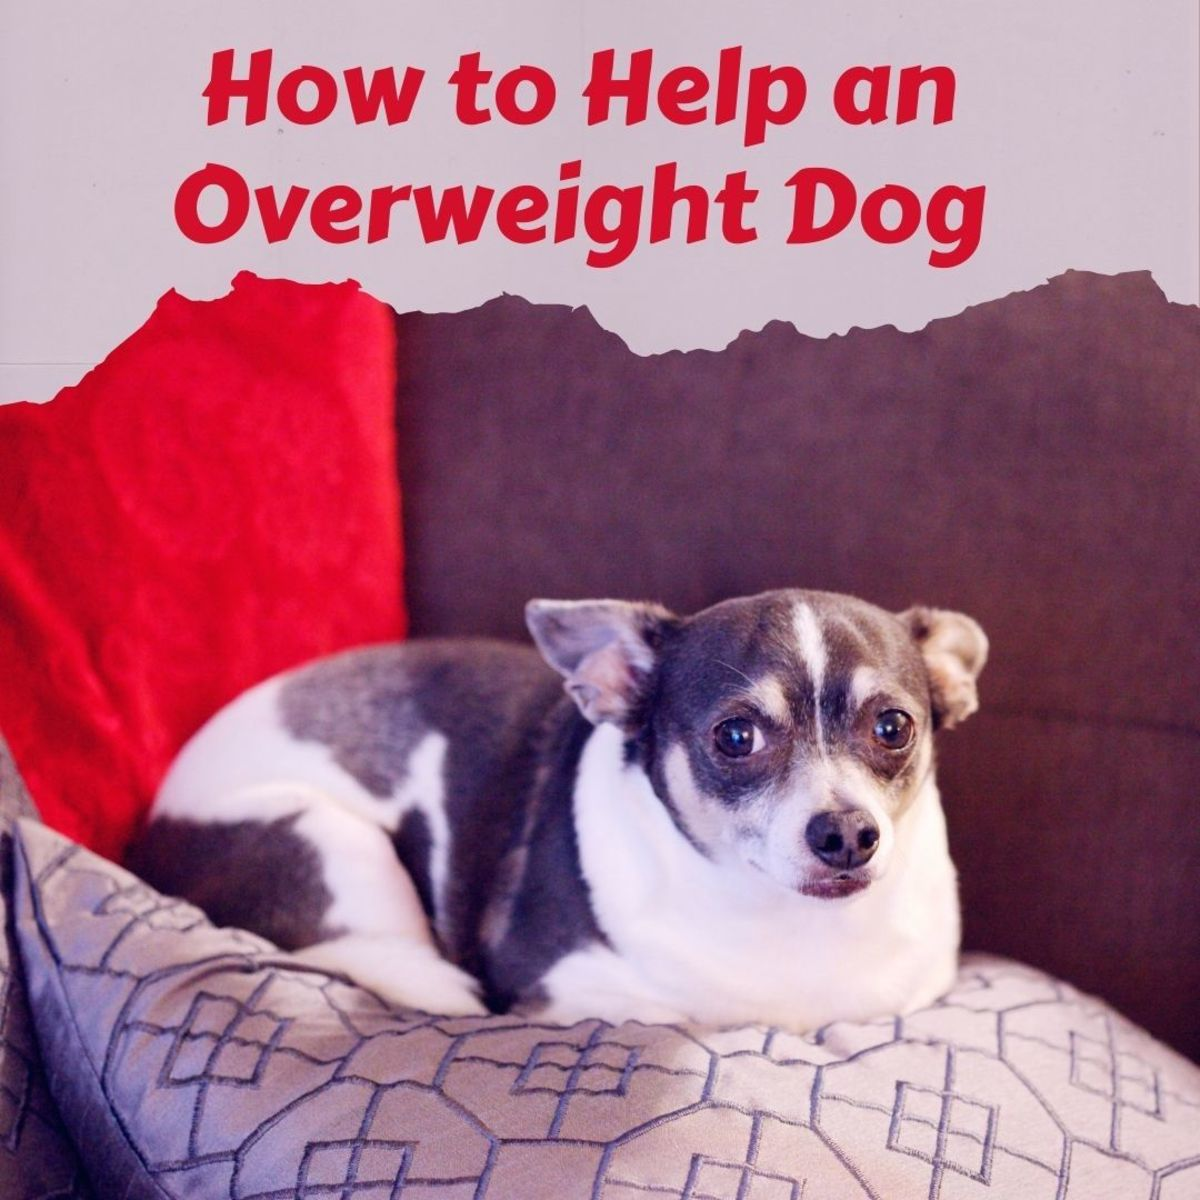 How to help a fat dog get healthy